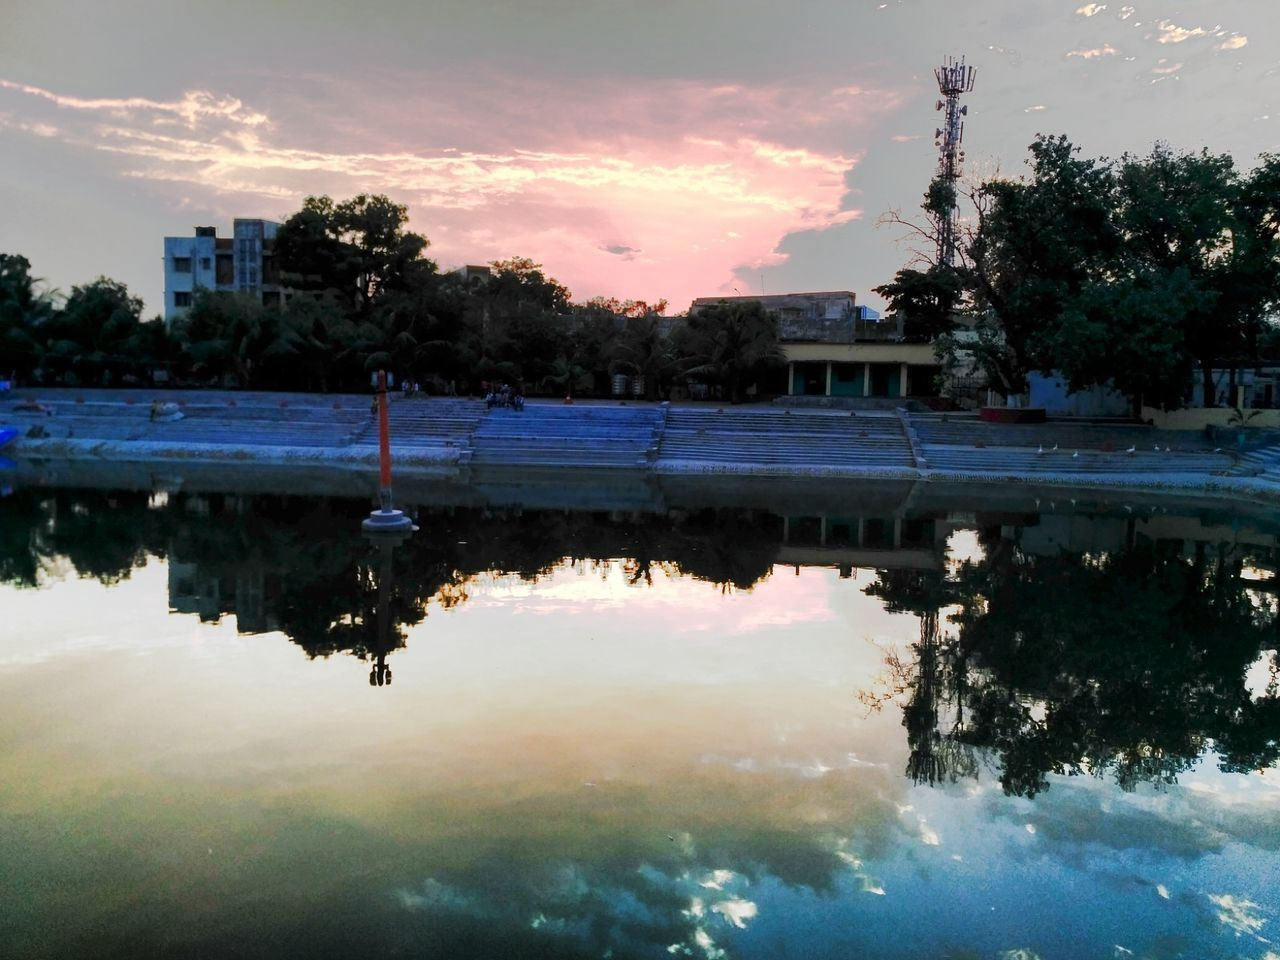 reflection, water, architecture, tree, sky, built structure, sunset, building exterior, waterfront, cloud - sky, outdoors, lake, no people, nature, puddle, day, beauty in nature, city